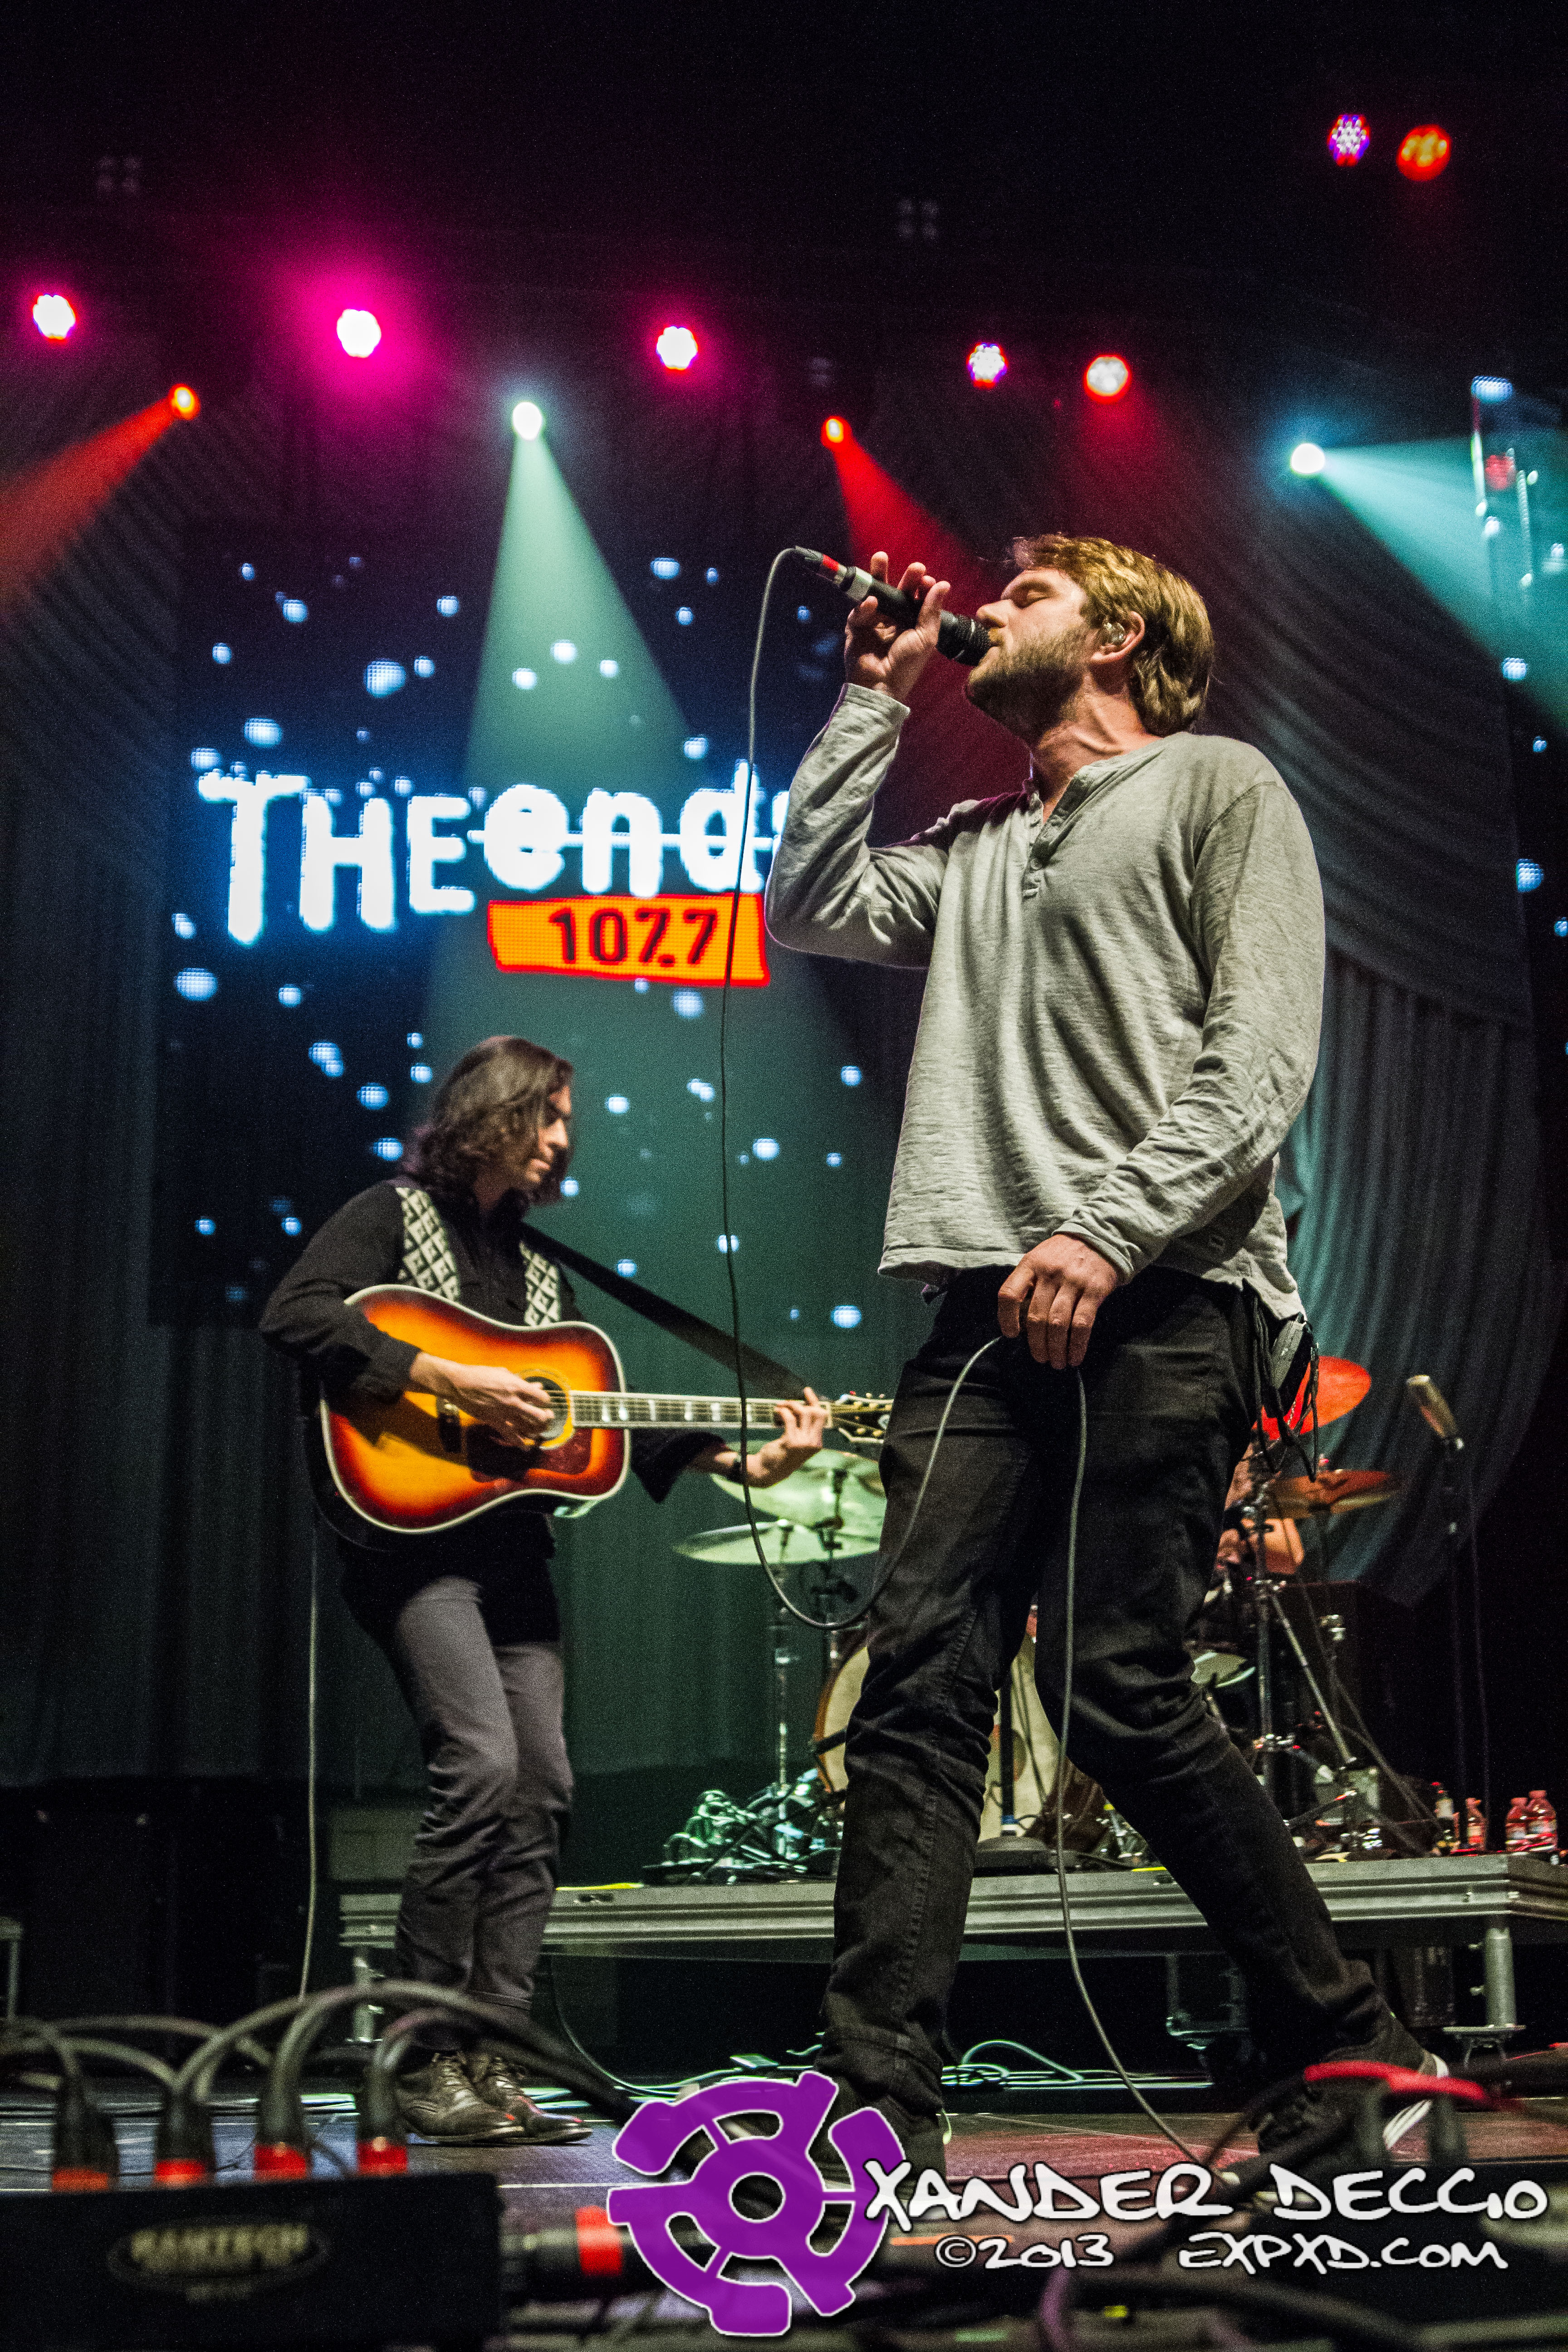 """107.7 The End's """"Deck The Hall Ball"""" 2013 (Photo by Xander Deccio)"""